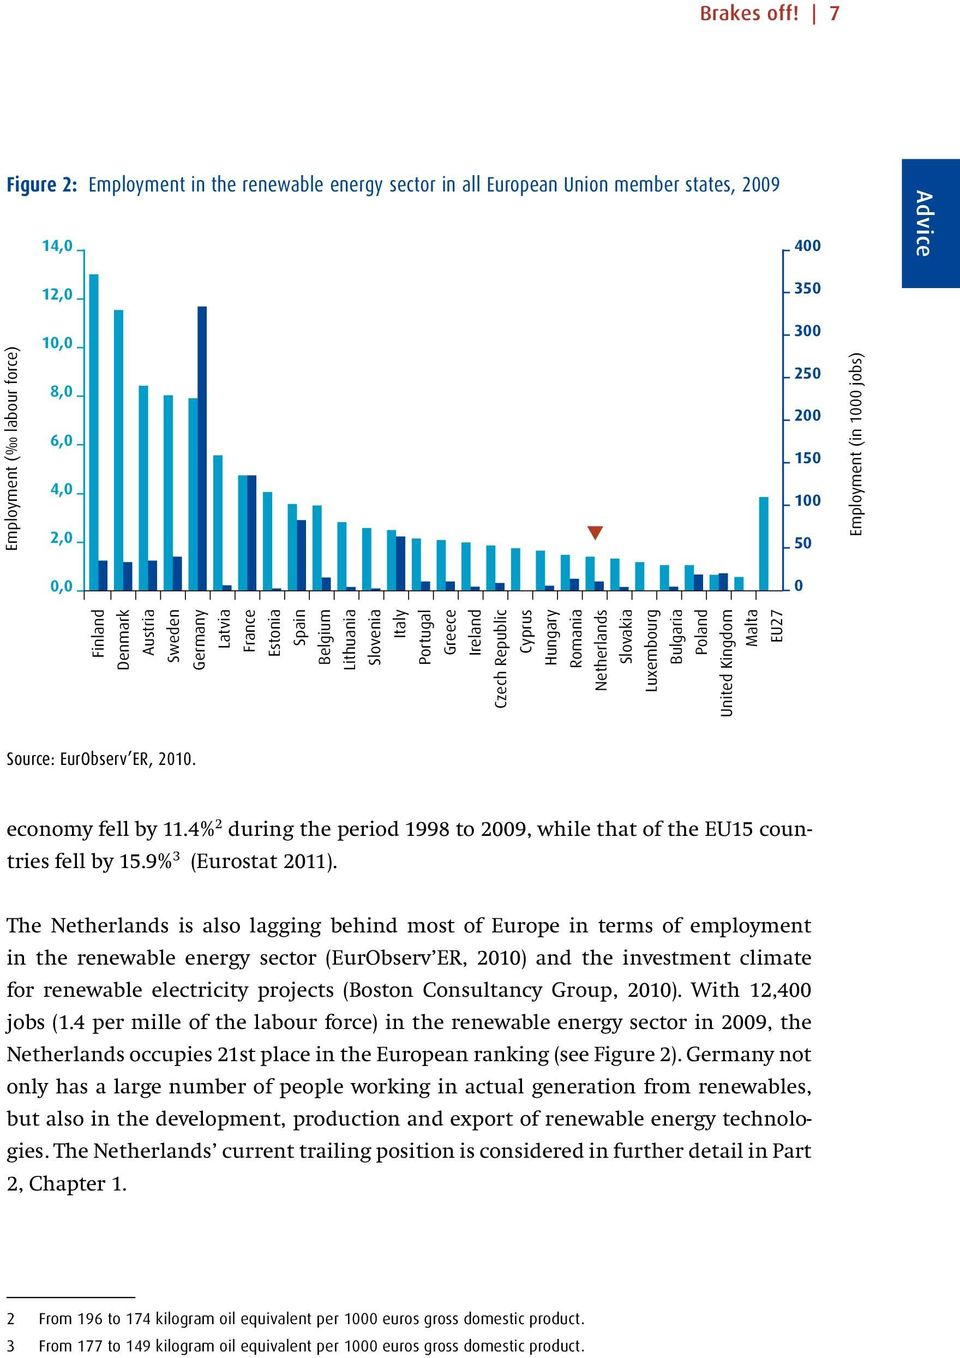 Employment (in 1000 jobs) 0,0 0 Finland Denmark Austria Sweden Germany Latvia France Estonia Spain Belgium Lithuania Slovenia Italy Portugal Greece Ireland Czech Republic Cyprus Hungary Romania